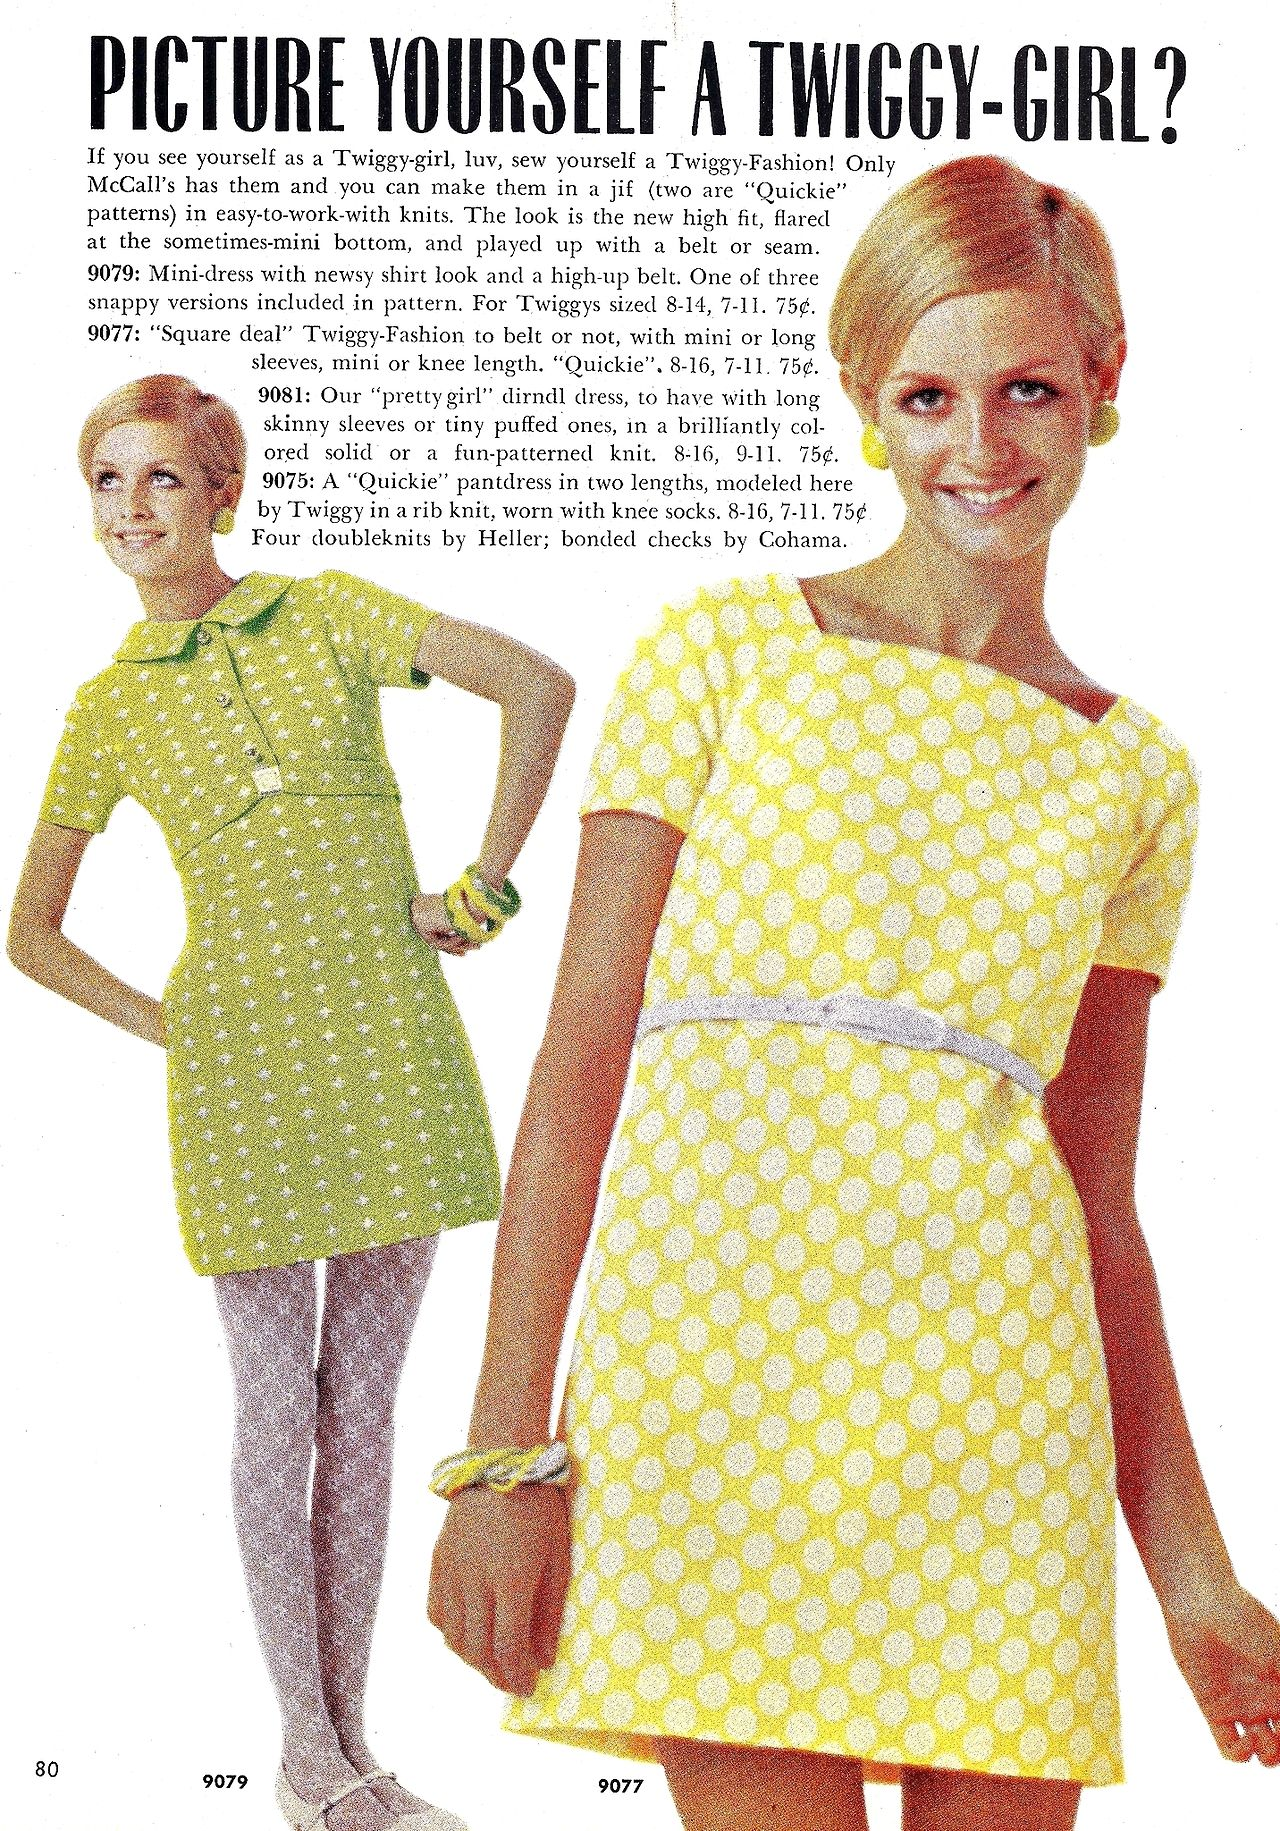 Vintage Fashion And Beauty Twiggy Models Dresses In